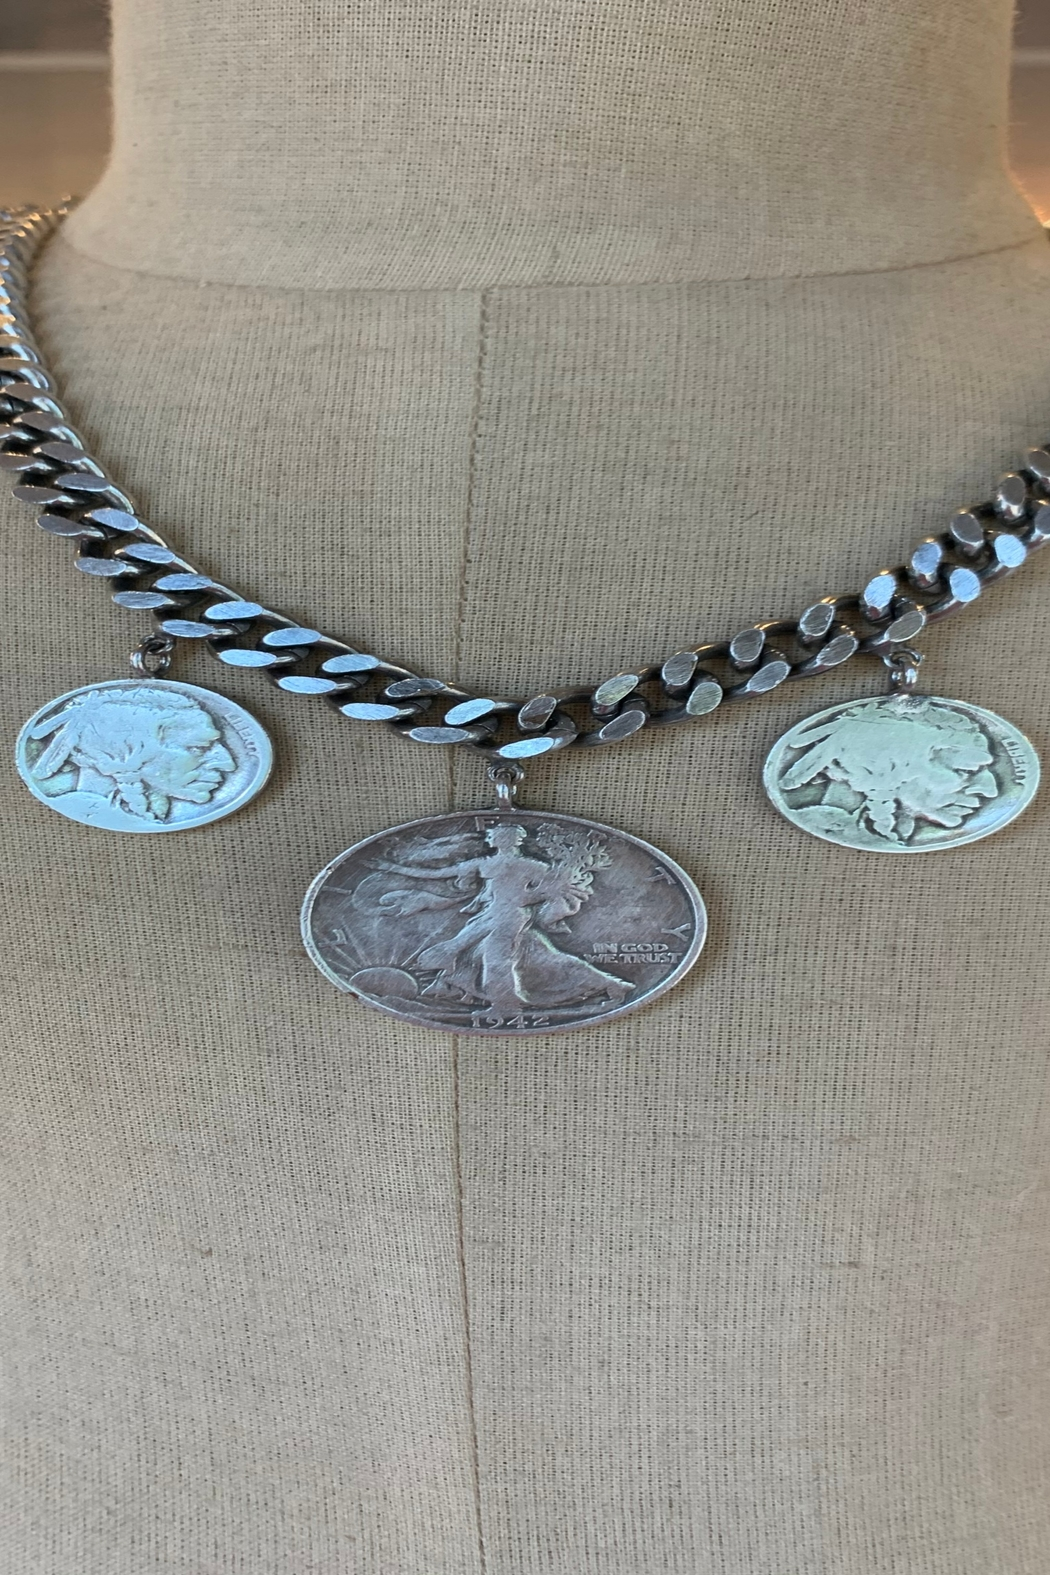 Janis Savitt Antique silver necklace with three coins - Front Cropped Image